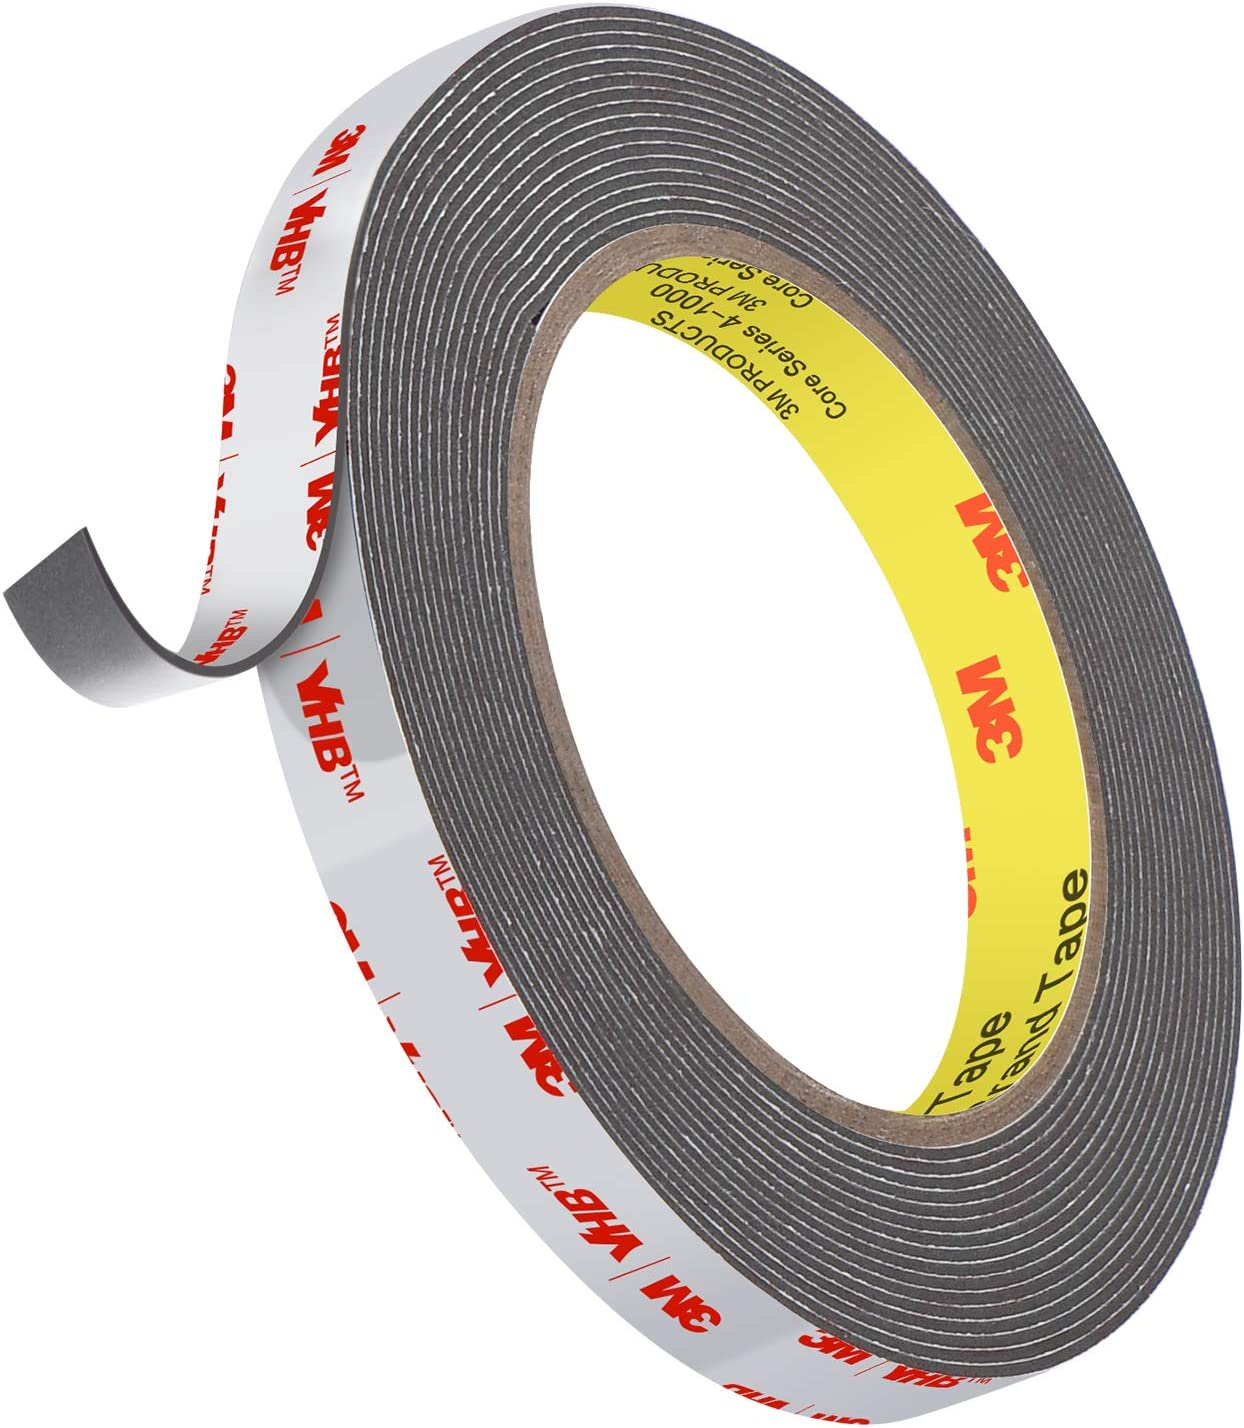 3M Double Sided Tape, 4941 Heavy Duty Mounting Waterproof VHB Foam Tape, 16FT Length, 0.4 Inch Width for Car Decor, Home Decor and Office Decor